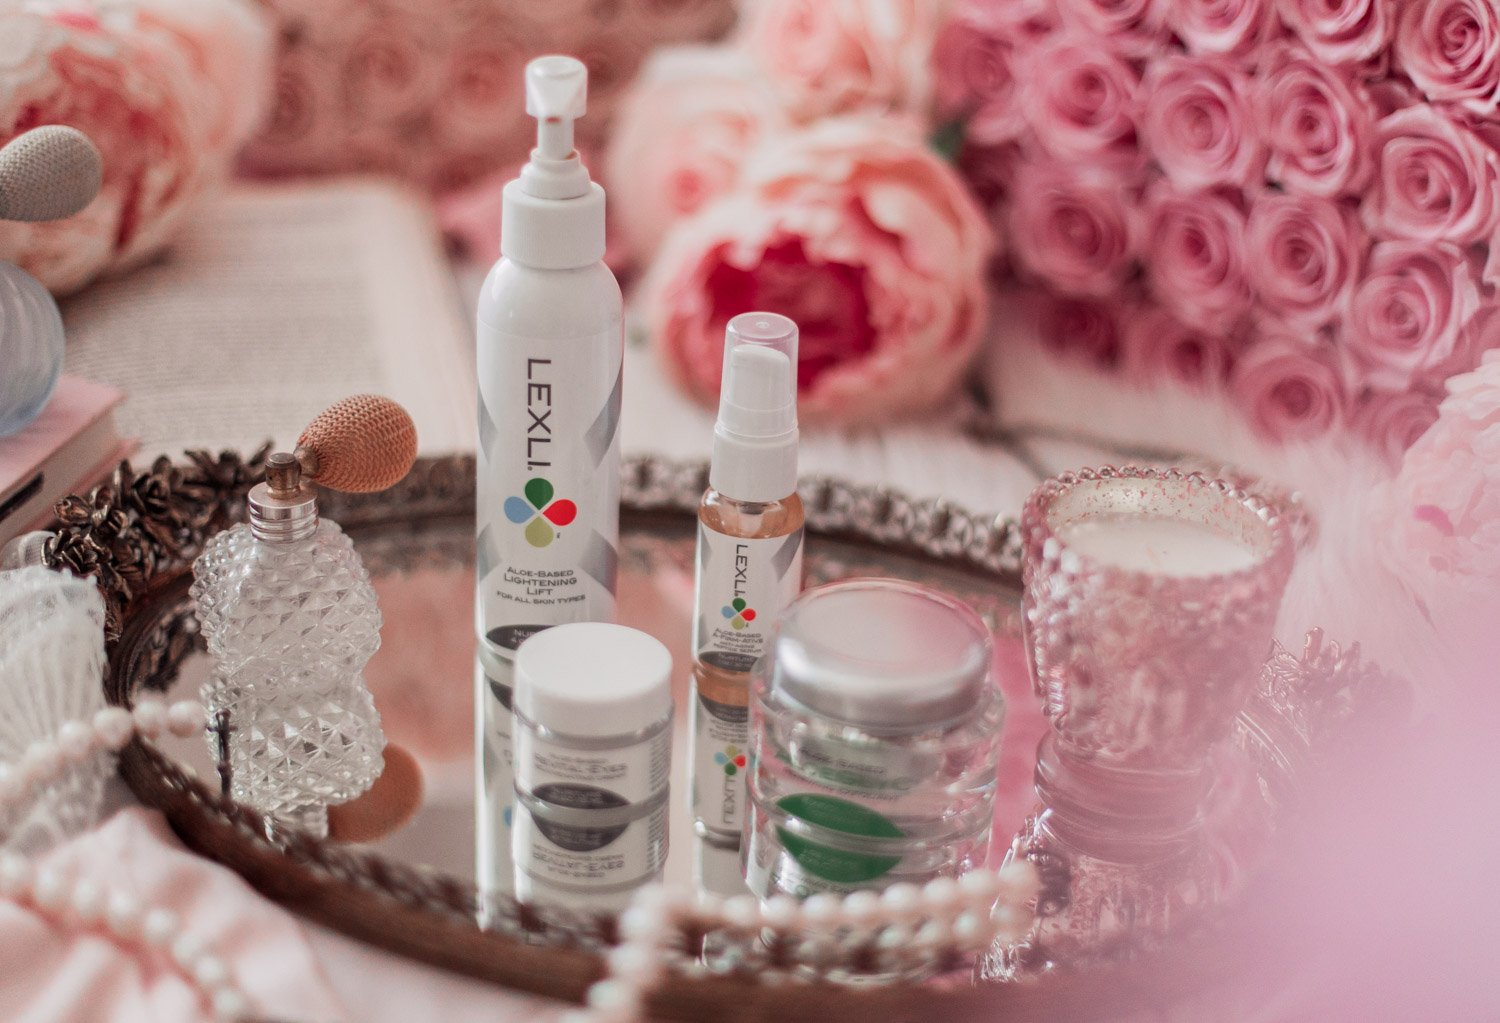 Elizabeth Hugen of Lizzie in Lace shares her self-care routine with Lexli products